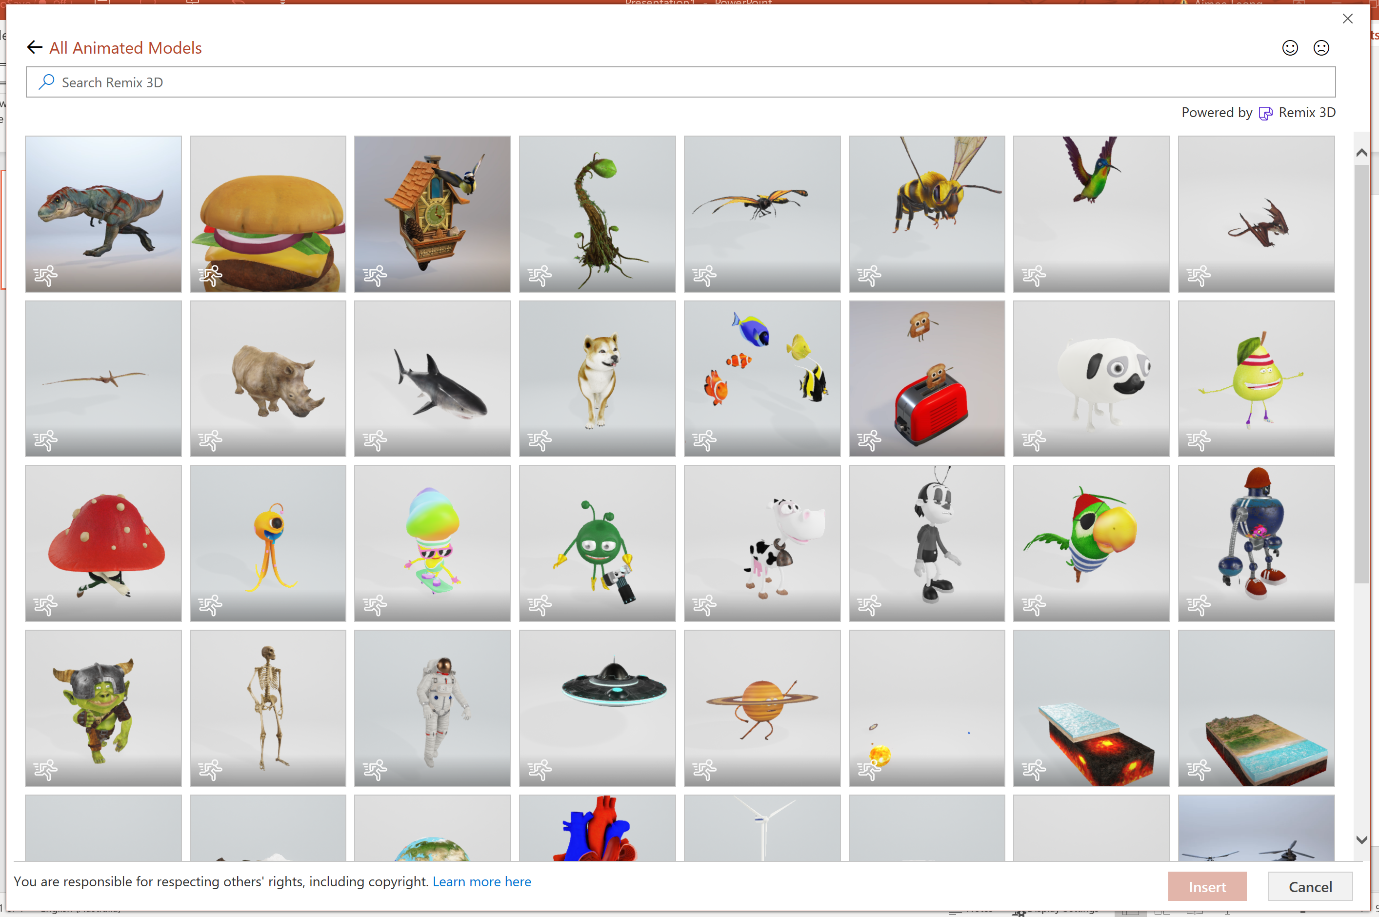 Tip all animated models are badged with the running man to easily identify image